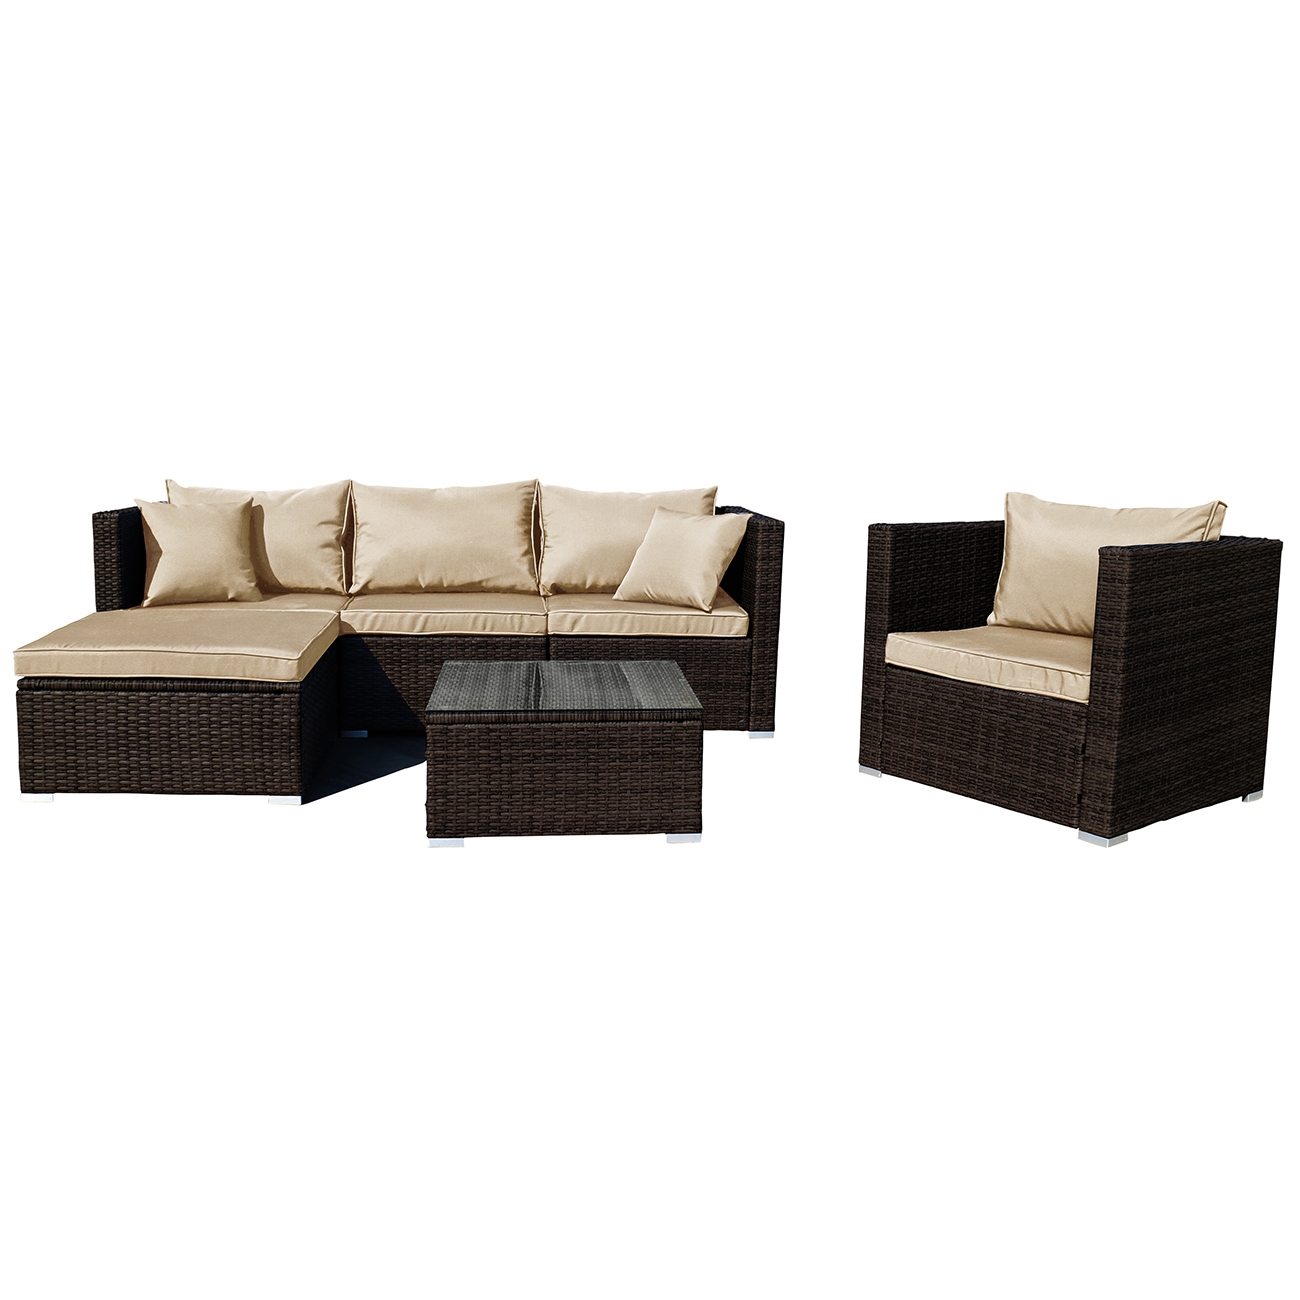 Outdoor Couch Set 6pc Outdoor Patio Furniture Rattan Wicker Sectional Sofa